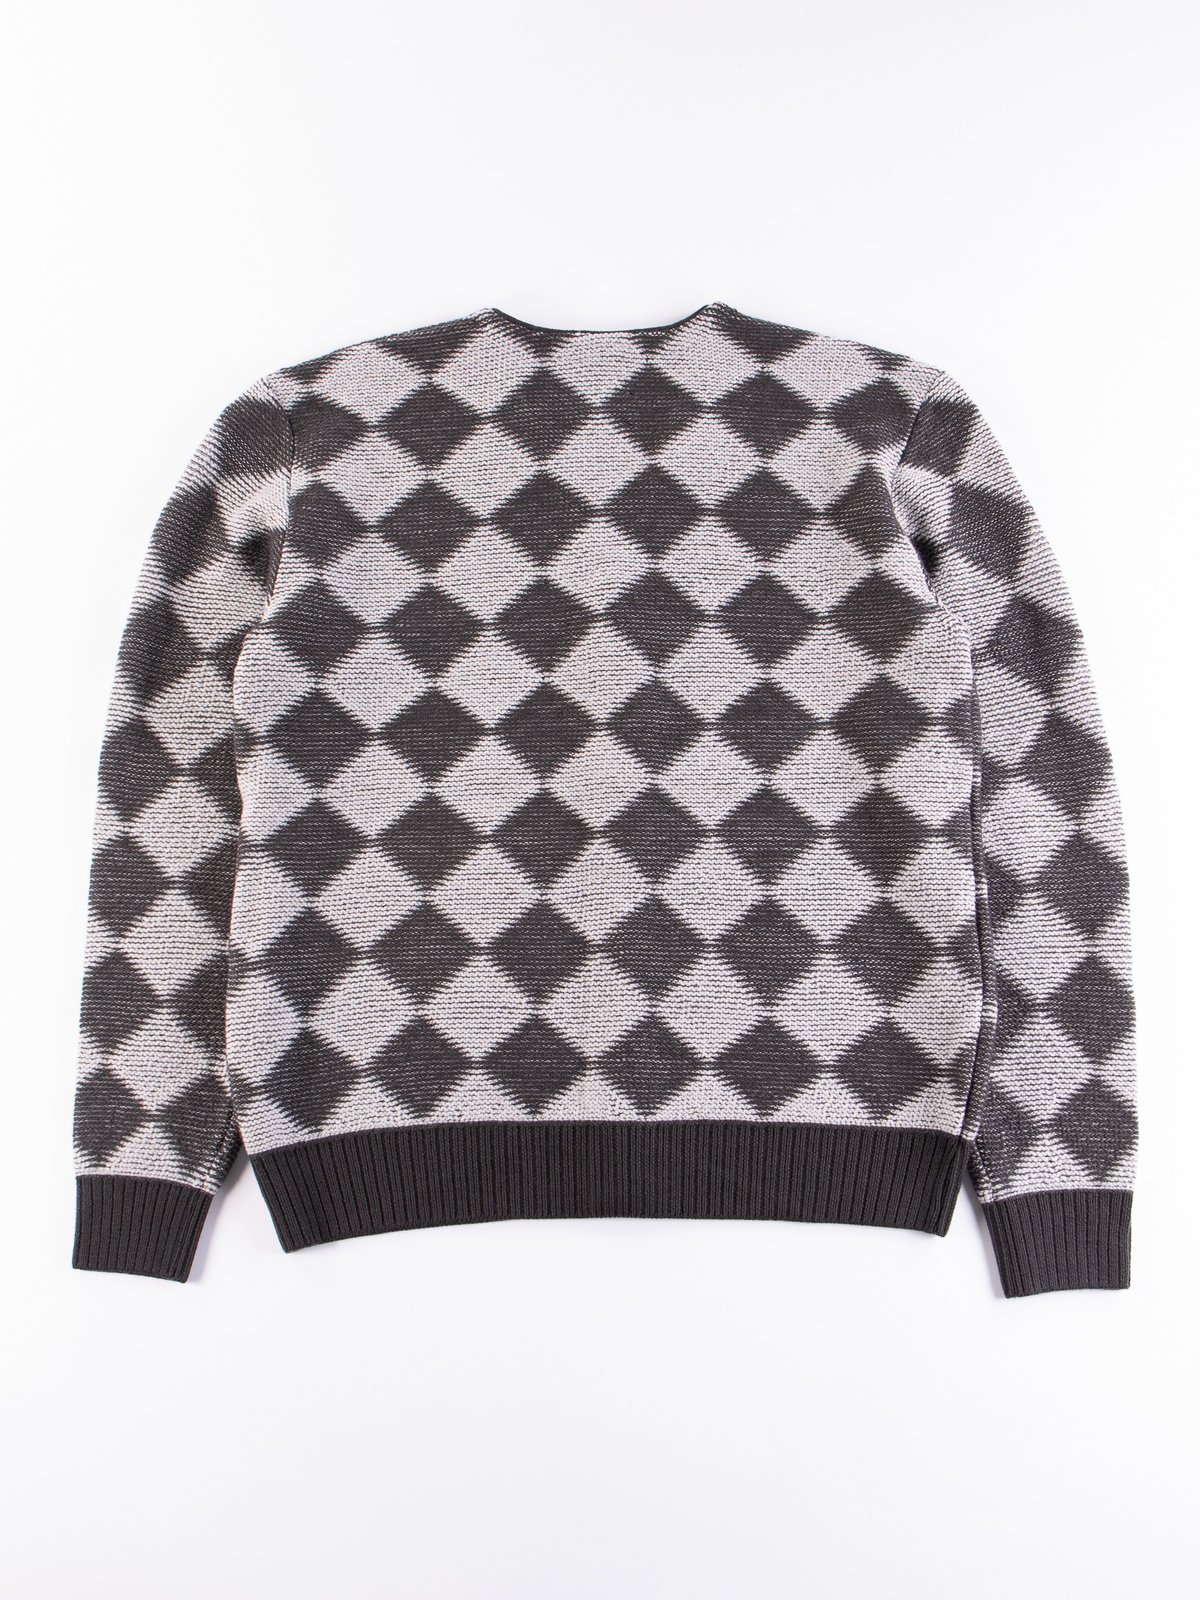 Charcoal Checkered V Neck Cardigan - Image 5